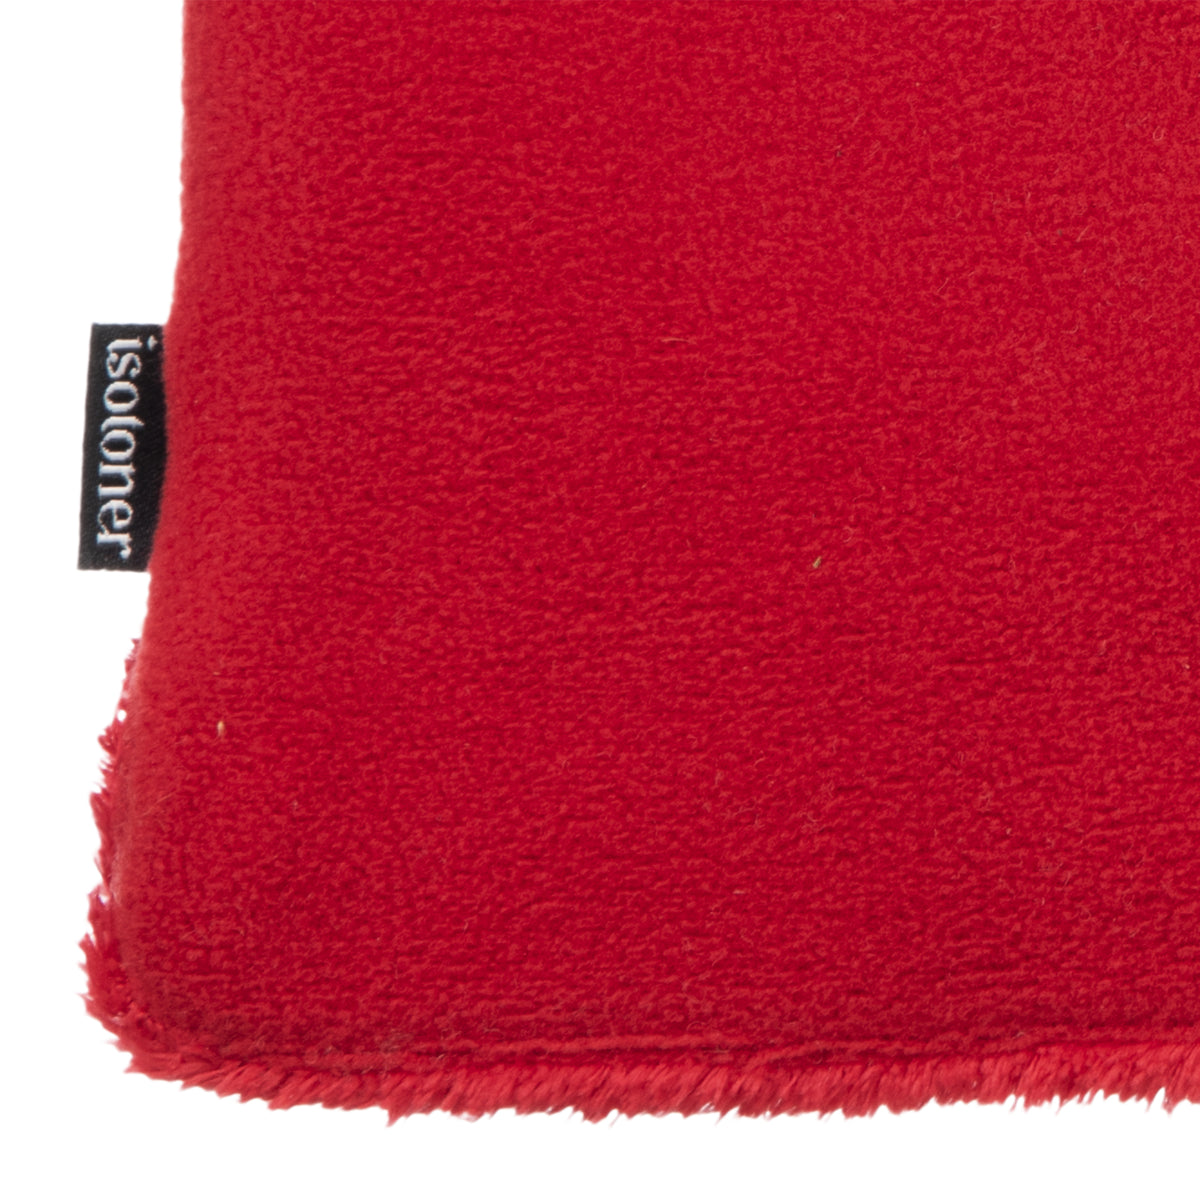 Women's Stretch Fleece Gloves in Really Red Close Up of Cuff